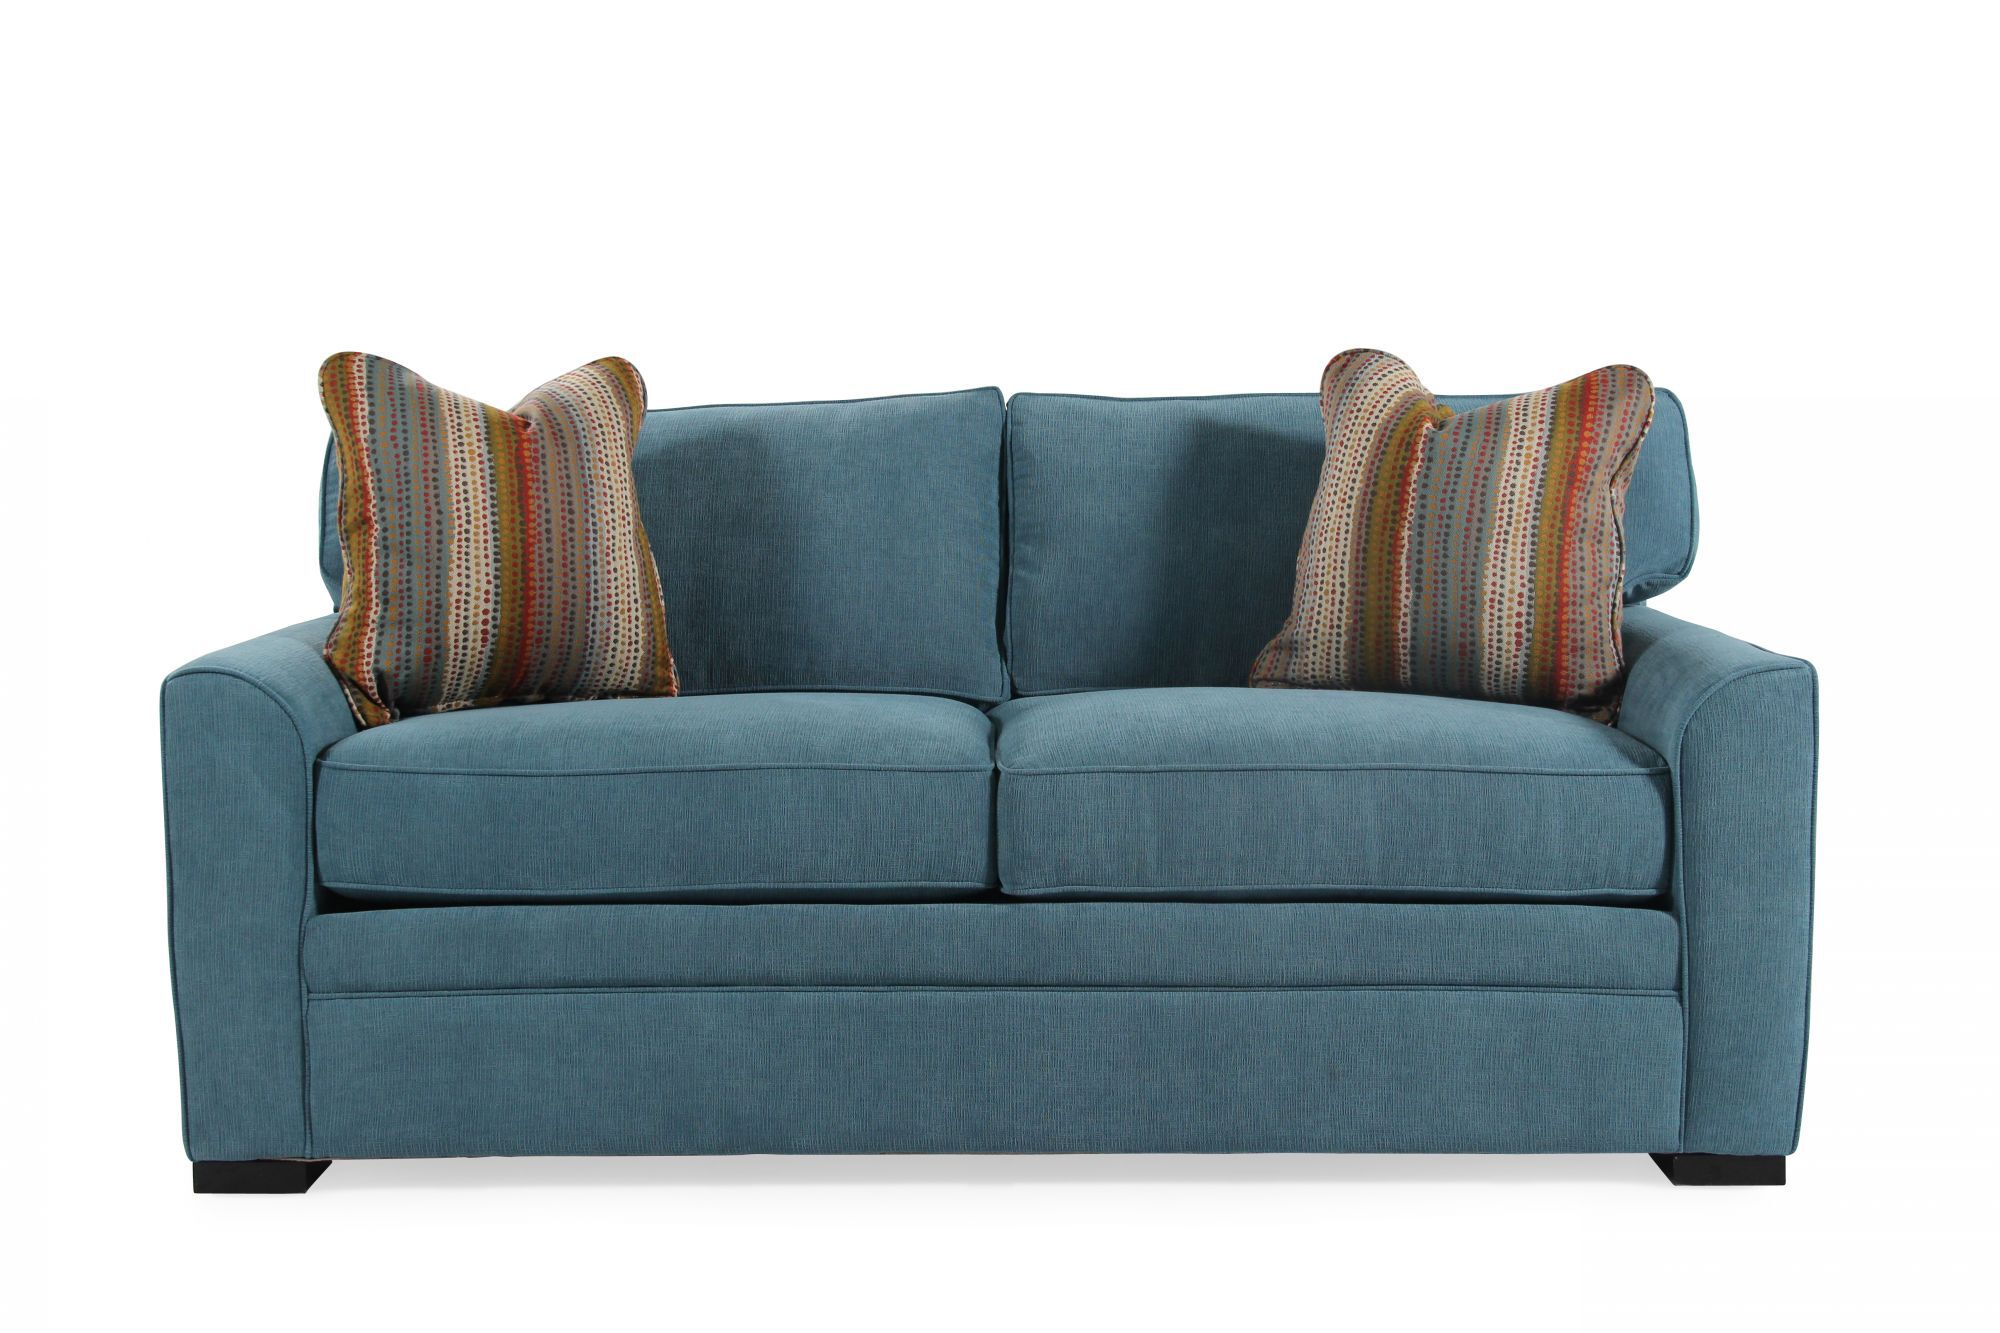 jonathan louis sofa bed covers for sectional blissful blue queen memory foam sleeper